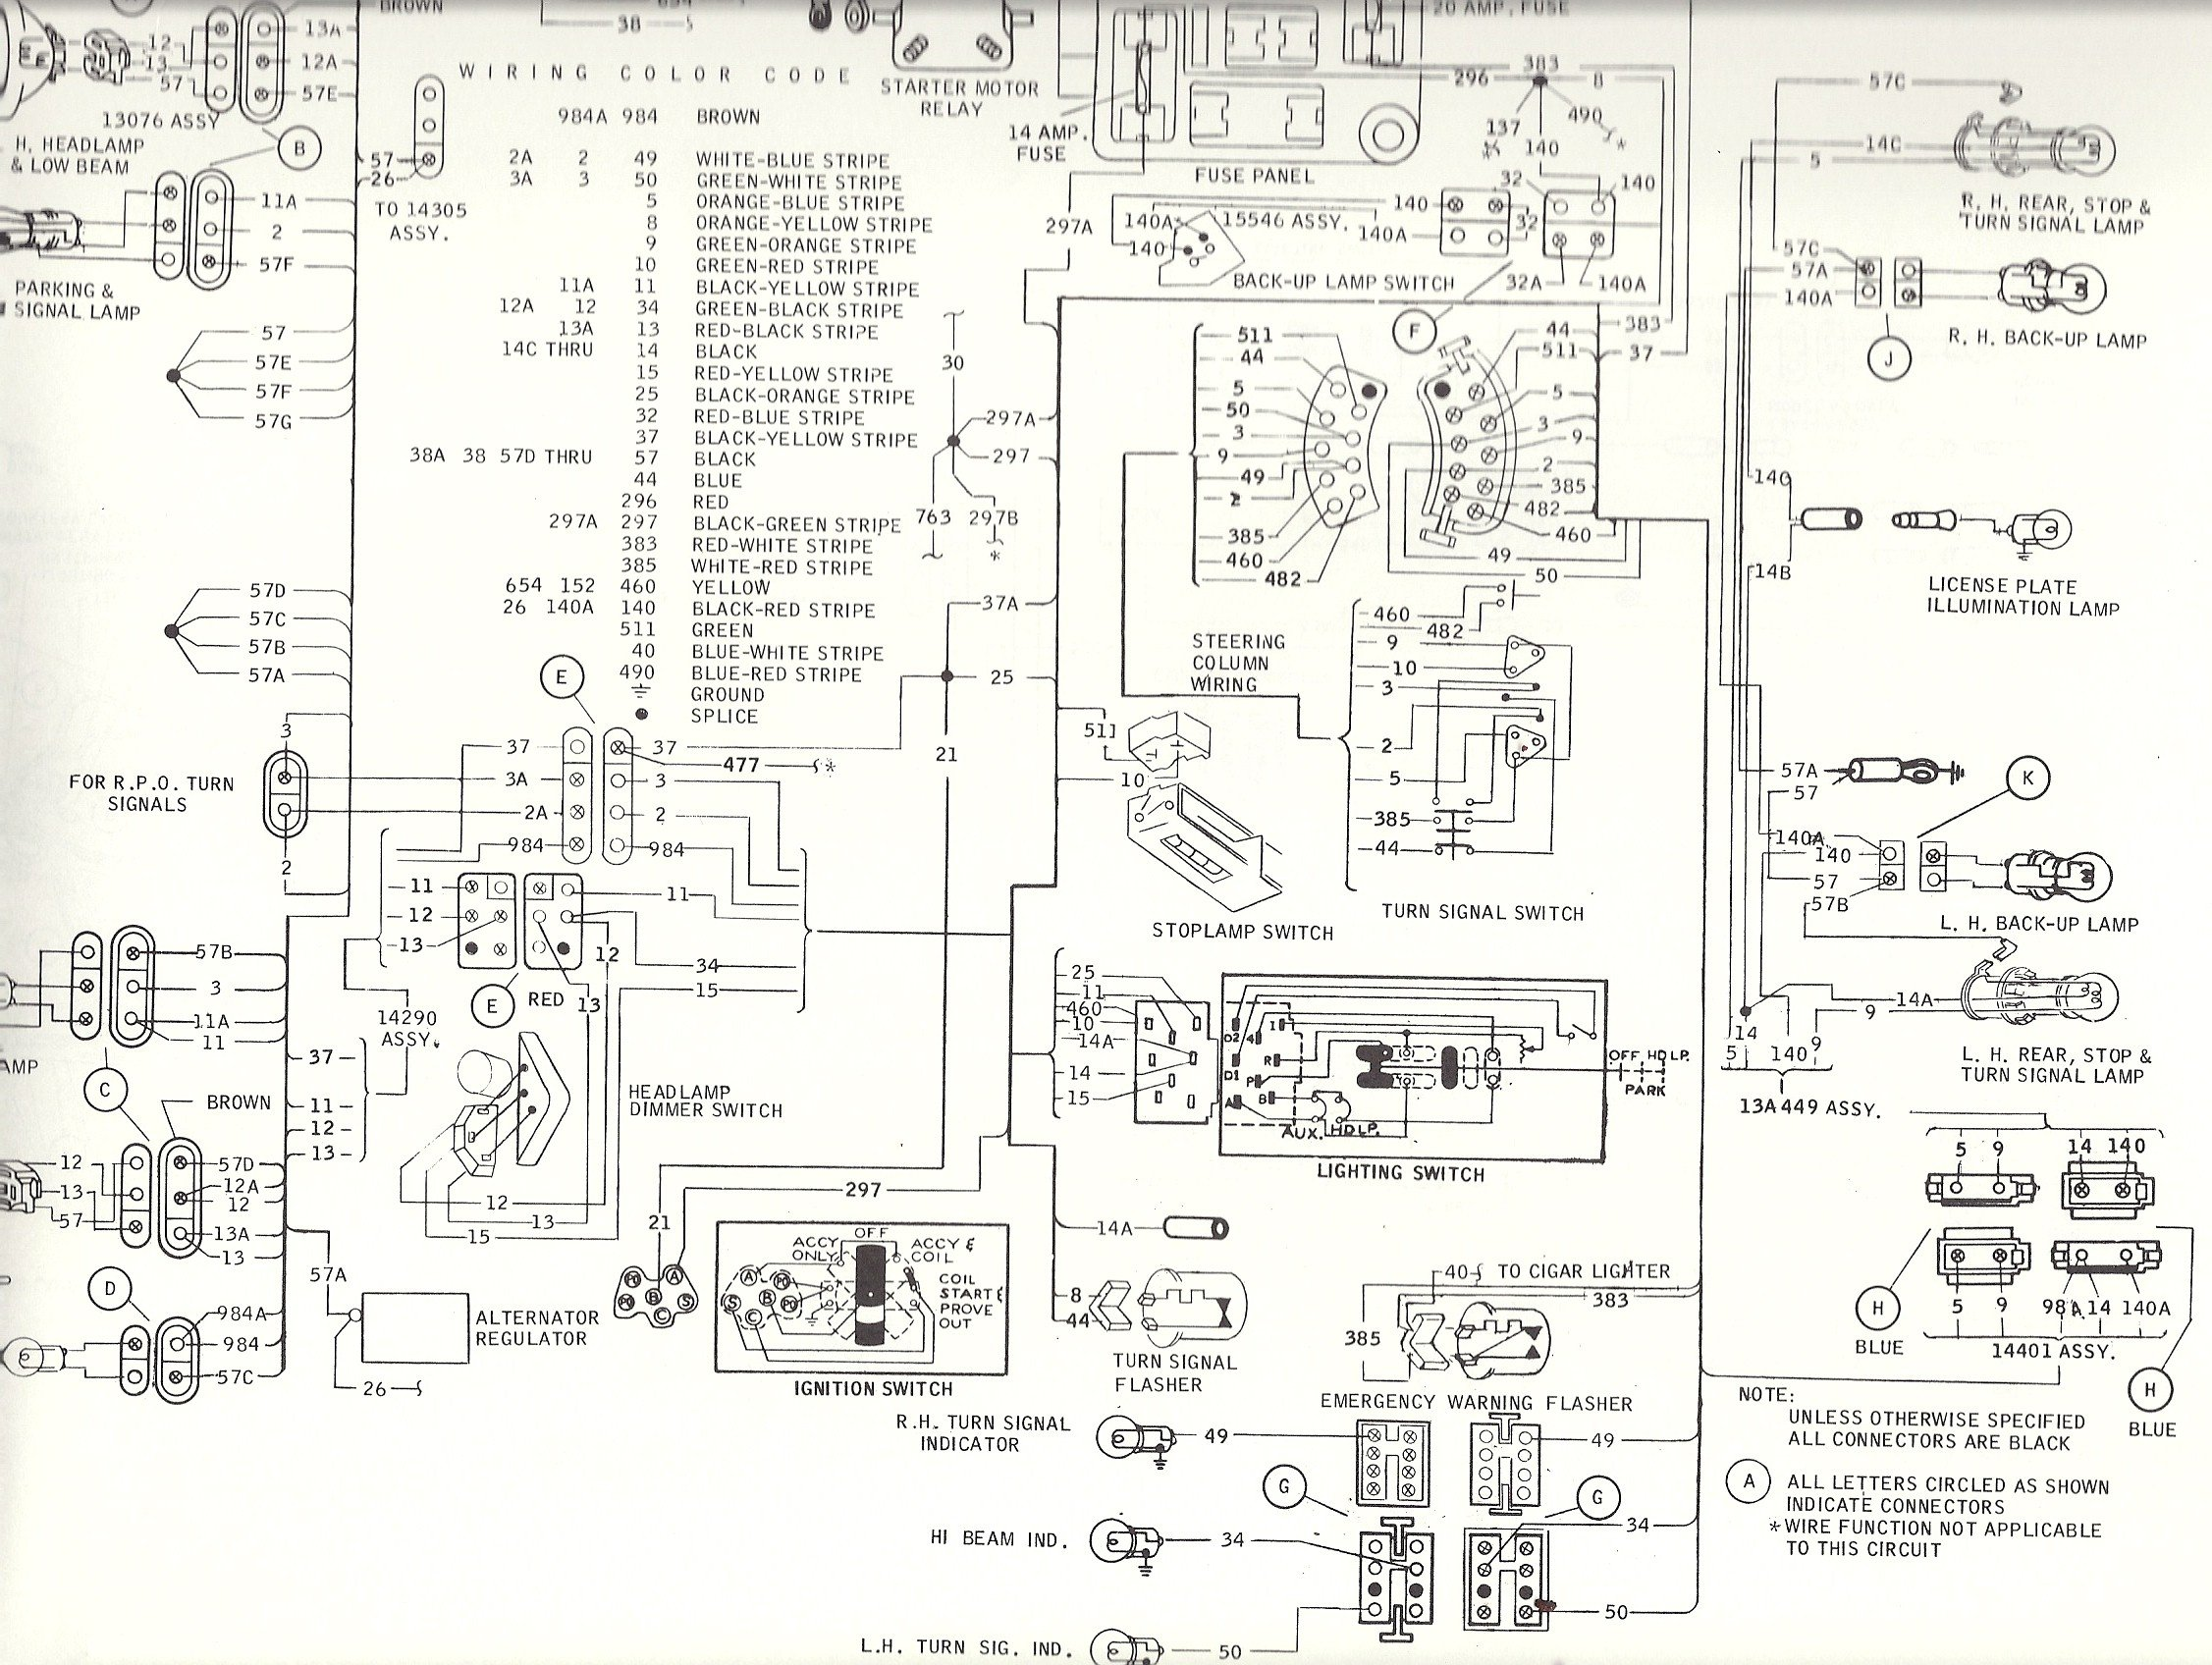 68 mustang turn signal wiring diagram